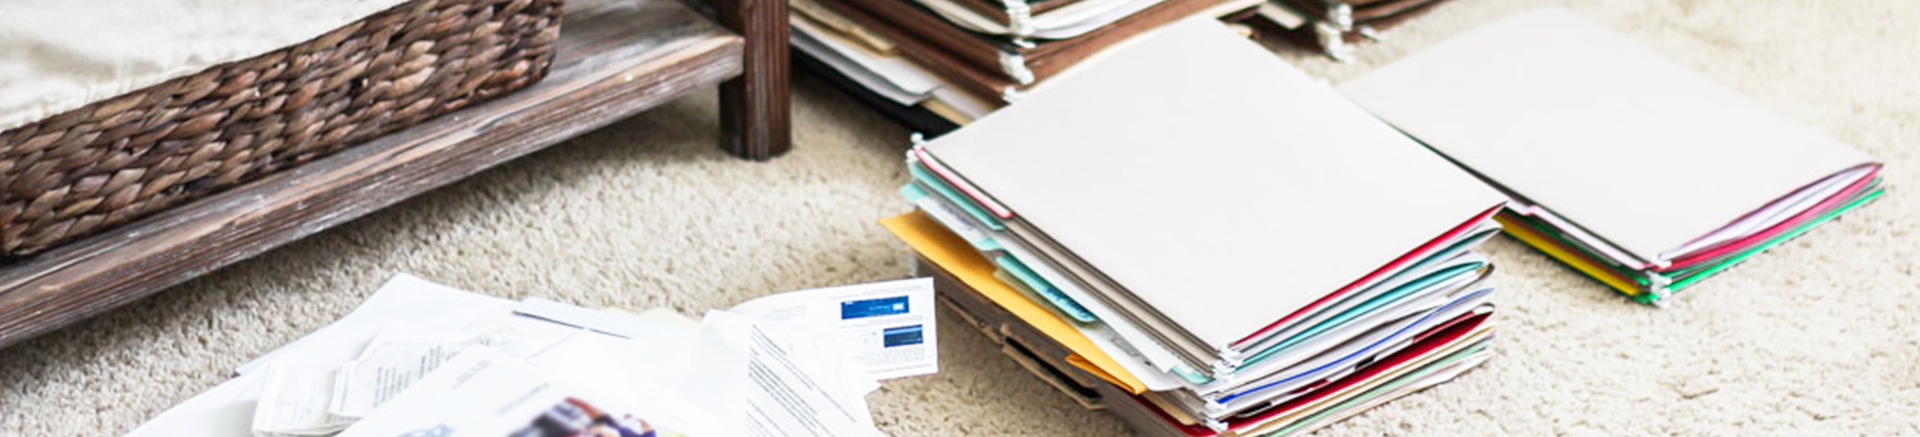 Less paper, less clutter - use SmartHub